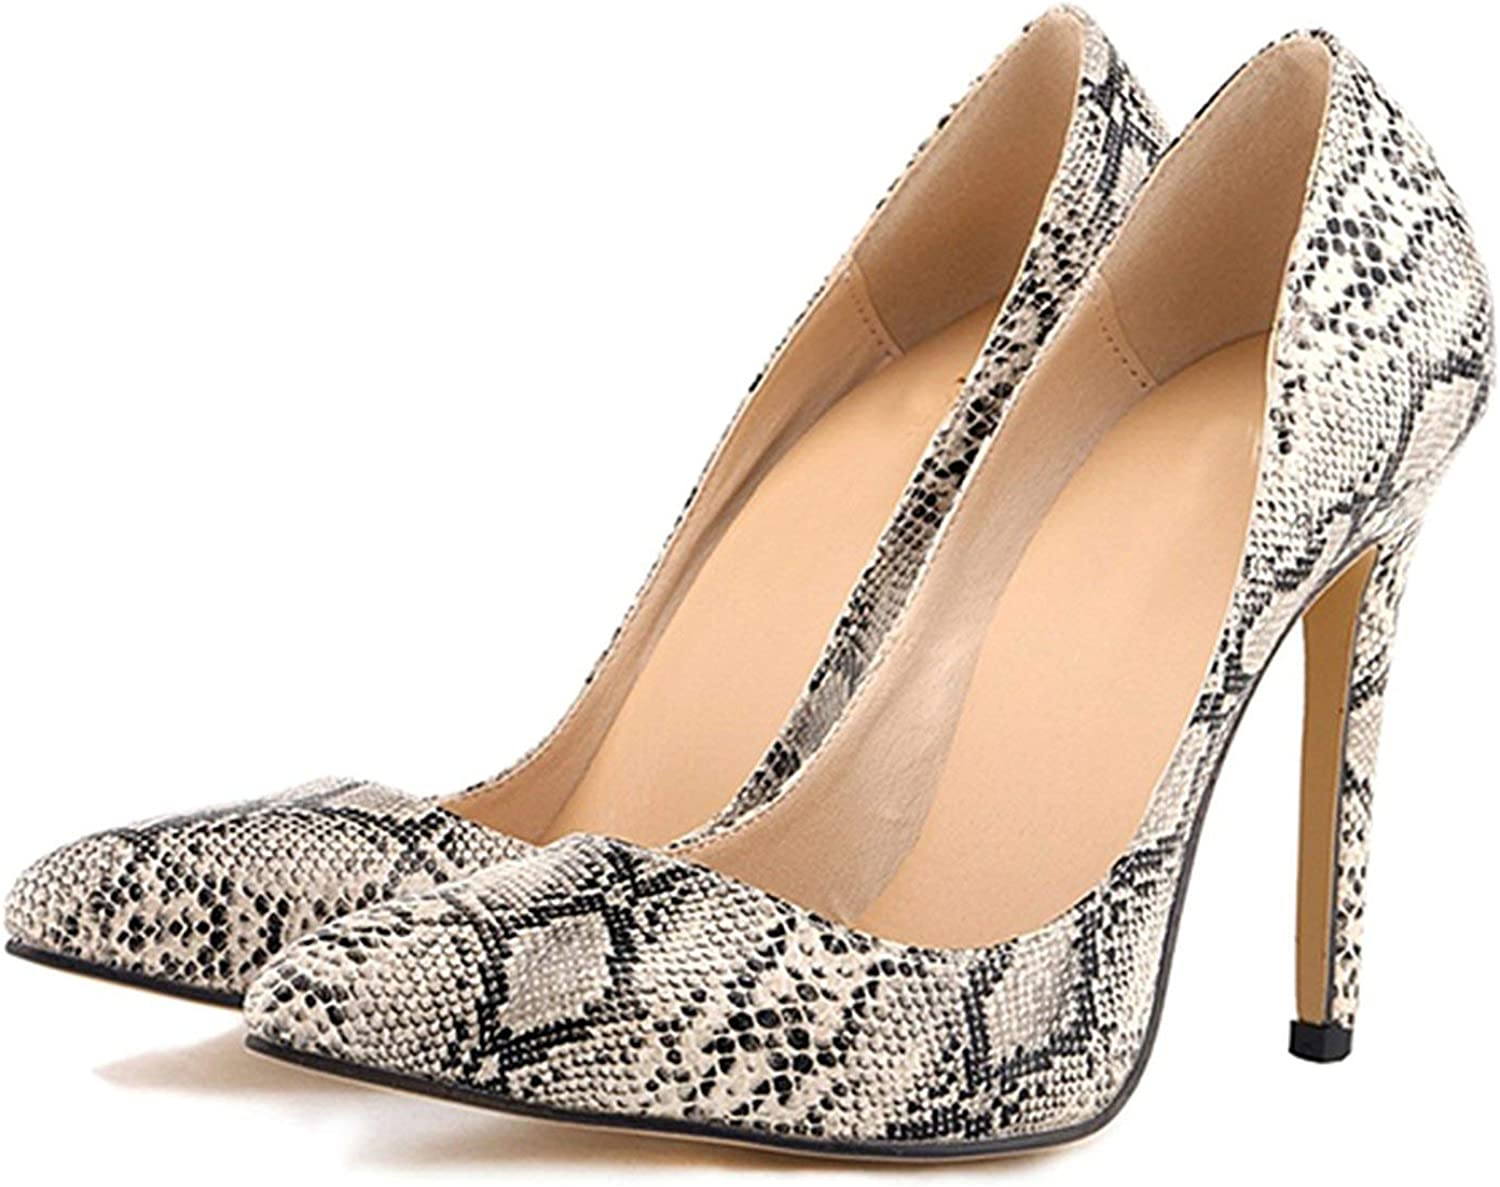 HANBINGPO Women Pumps Leopard shoes High Heels Sexy Pointed Toes Wedding shoes Woman Stiletto Heel Office Lady Dress shoes Casual Evening,Dark Snake shoes,4